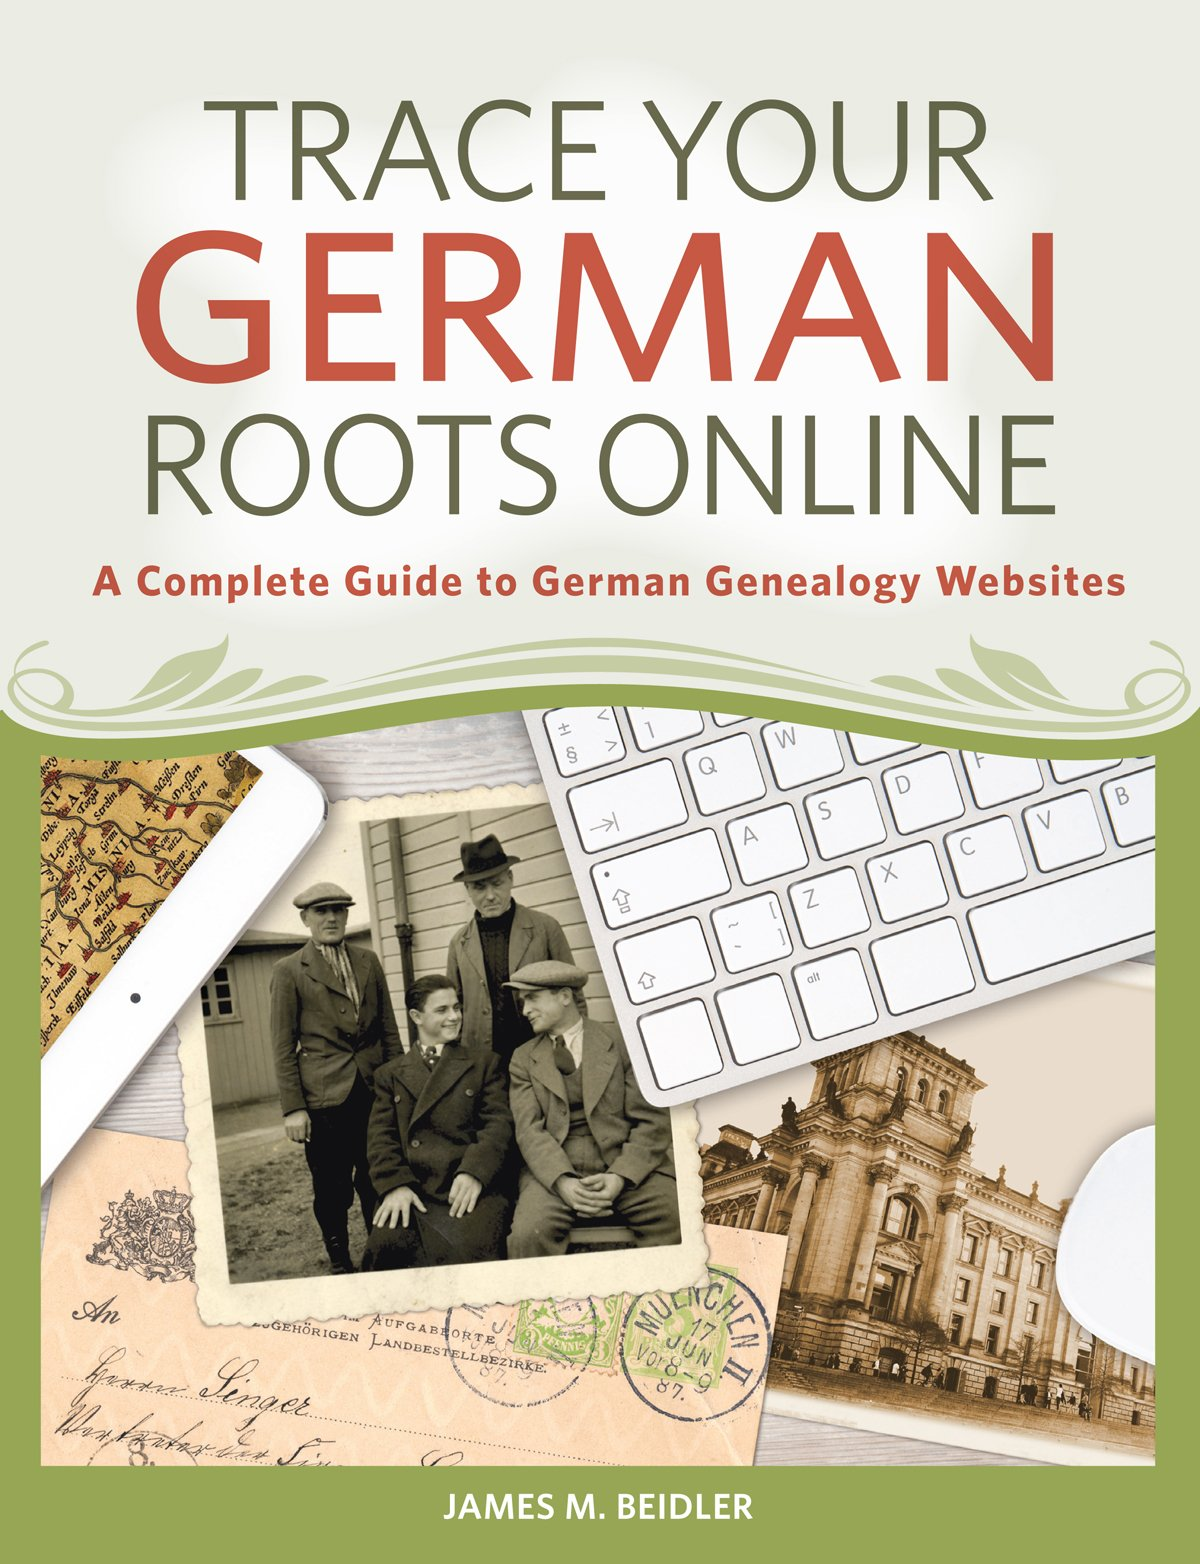 Trace Your German Roots Online: A Complete Guide to German Genealogy Websites PDF ePub fb2 book